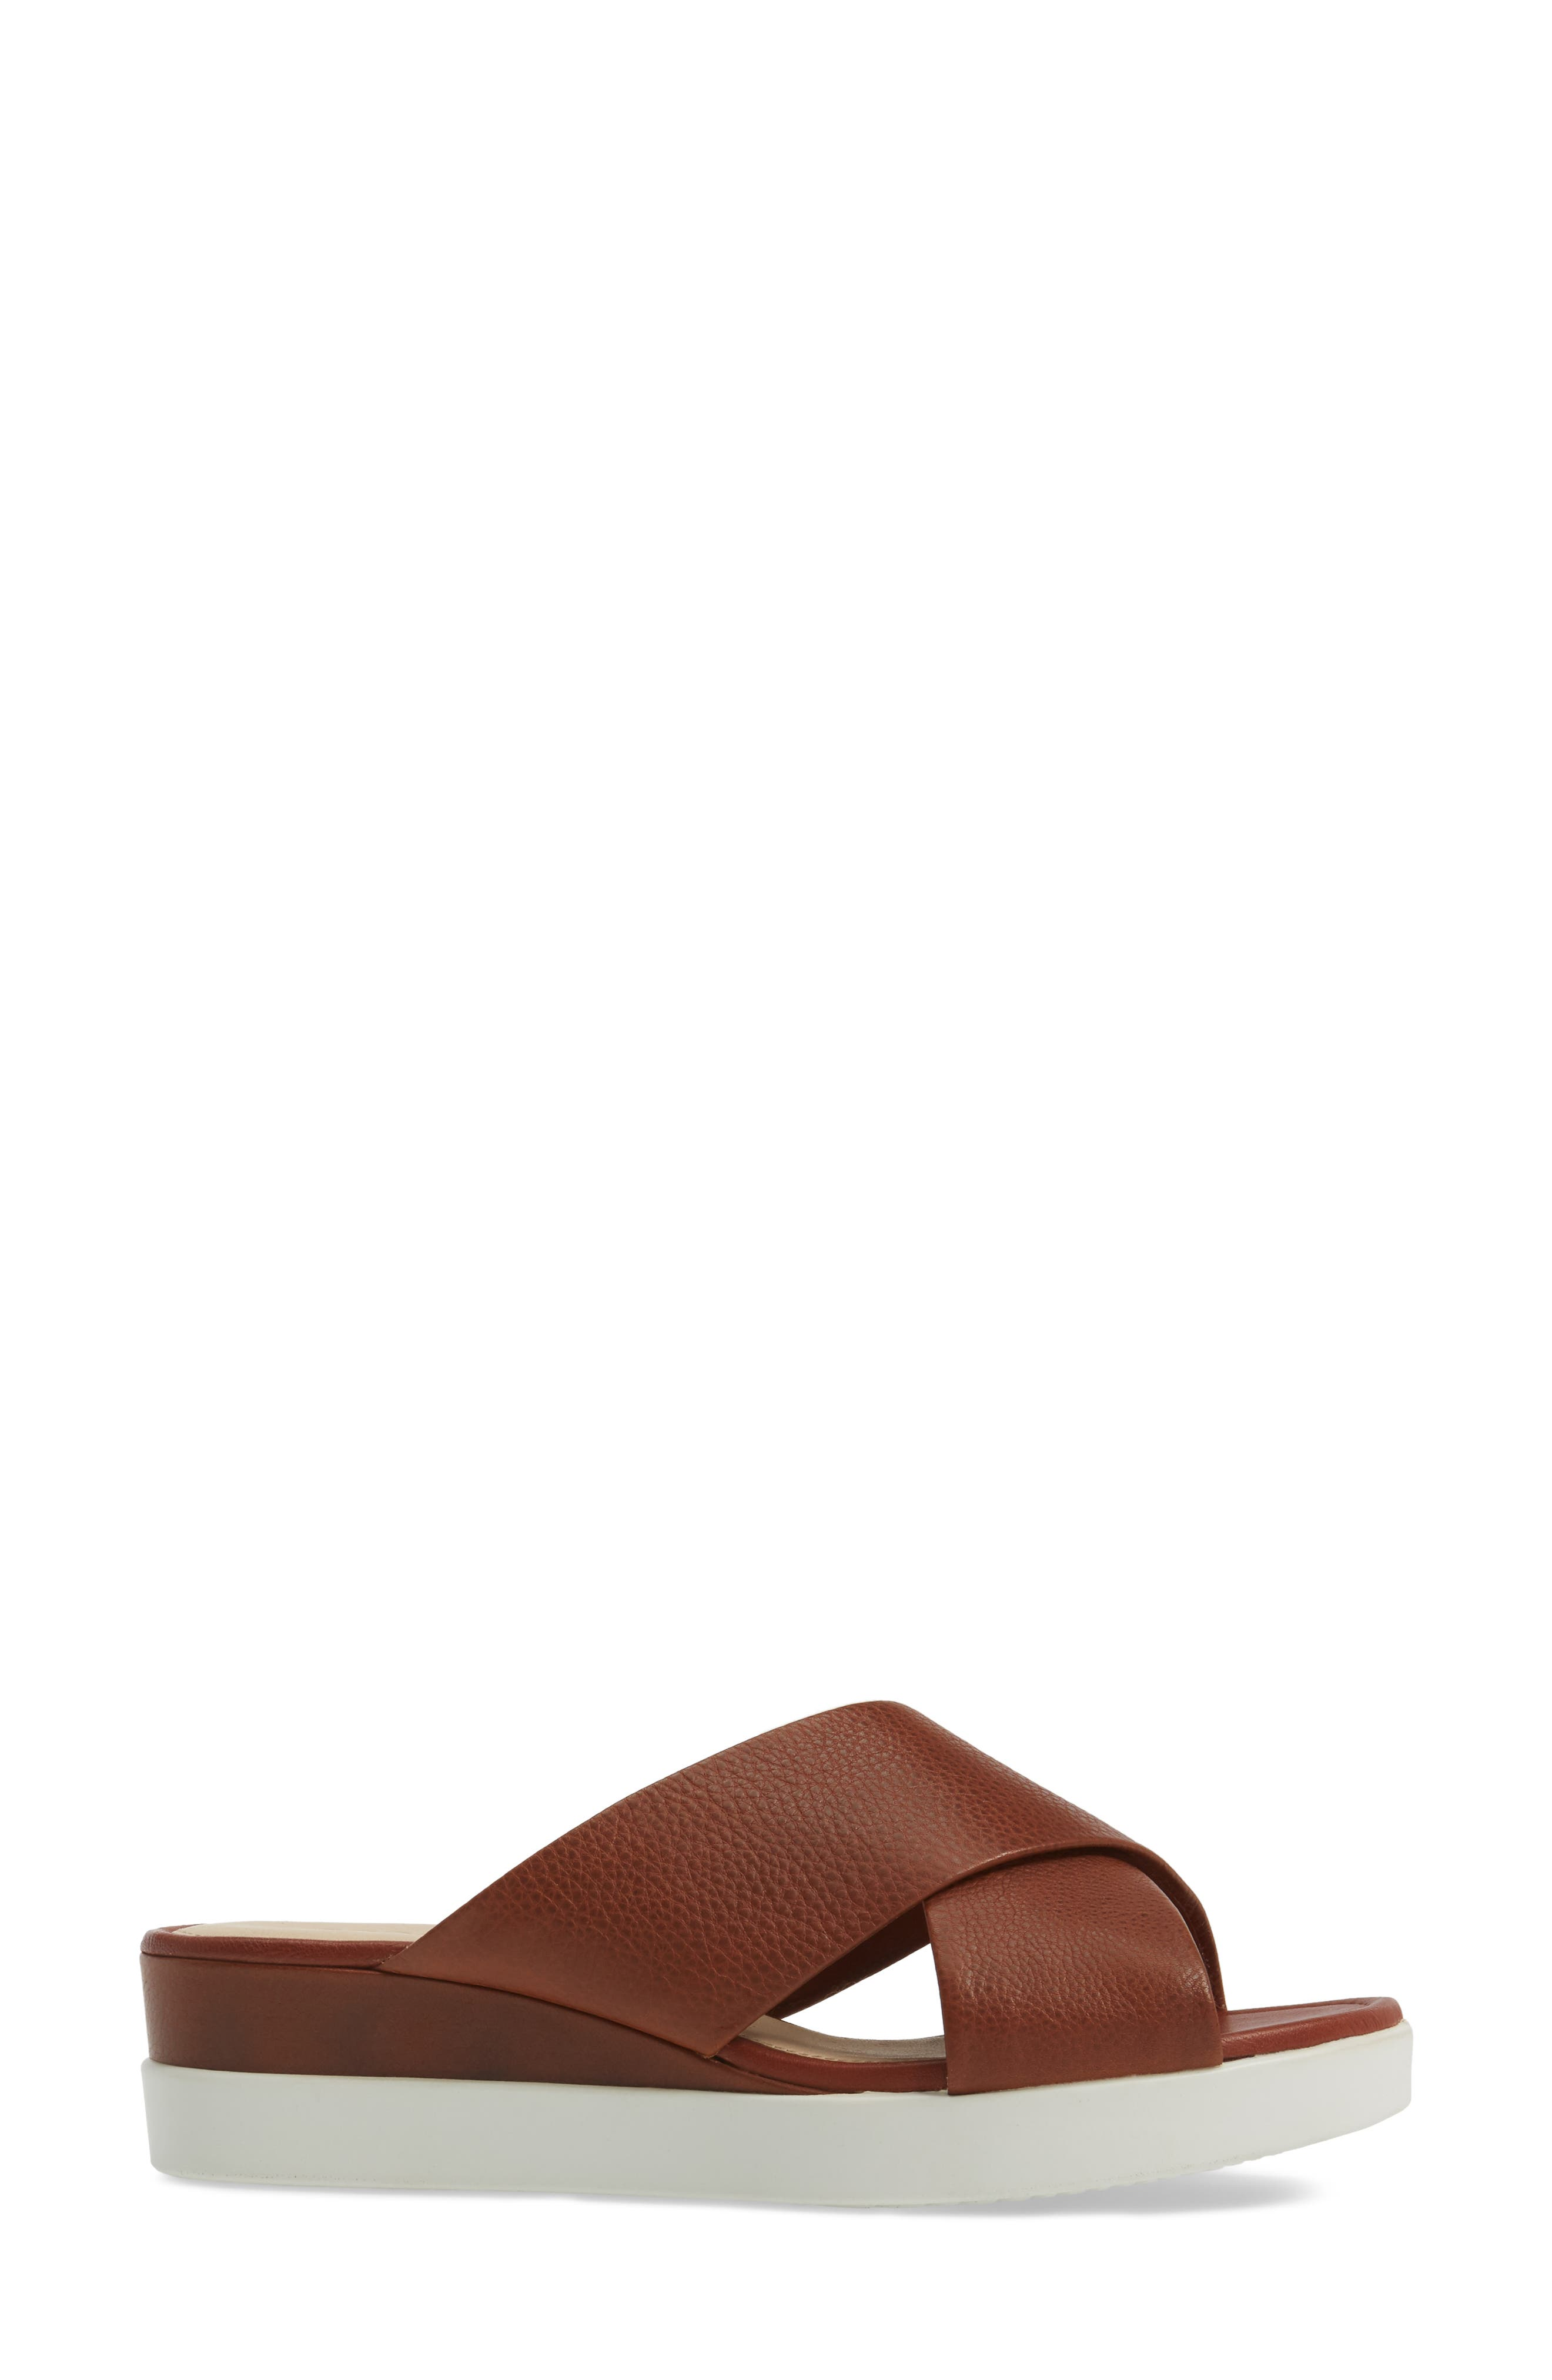 Touch Slide Sandal,                             Alternate thumbnail 12, color,